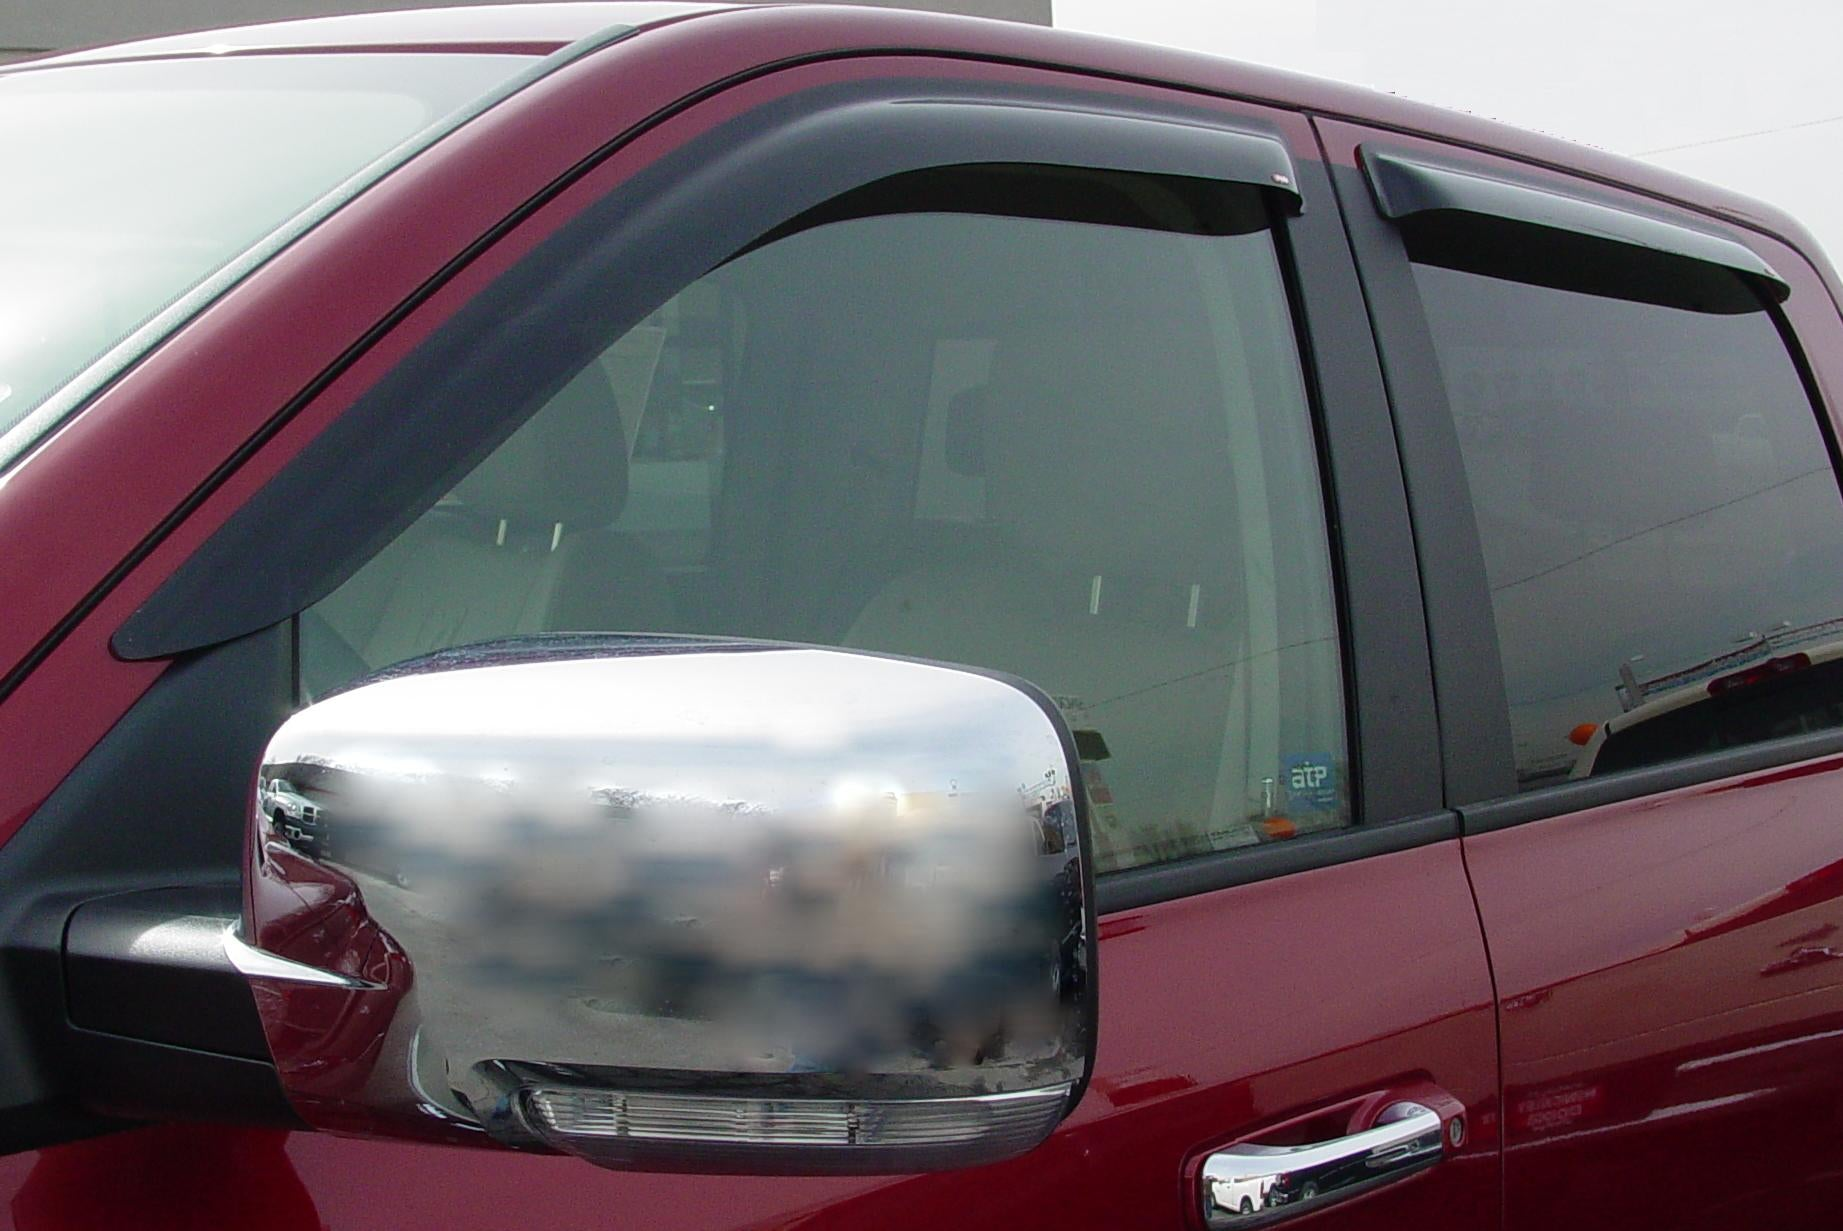 2004 Cadillac Escalade Slim Wind Deflectors